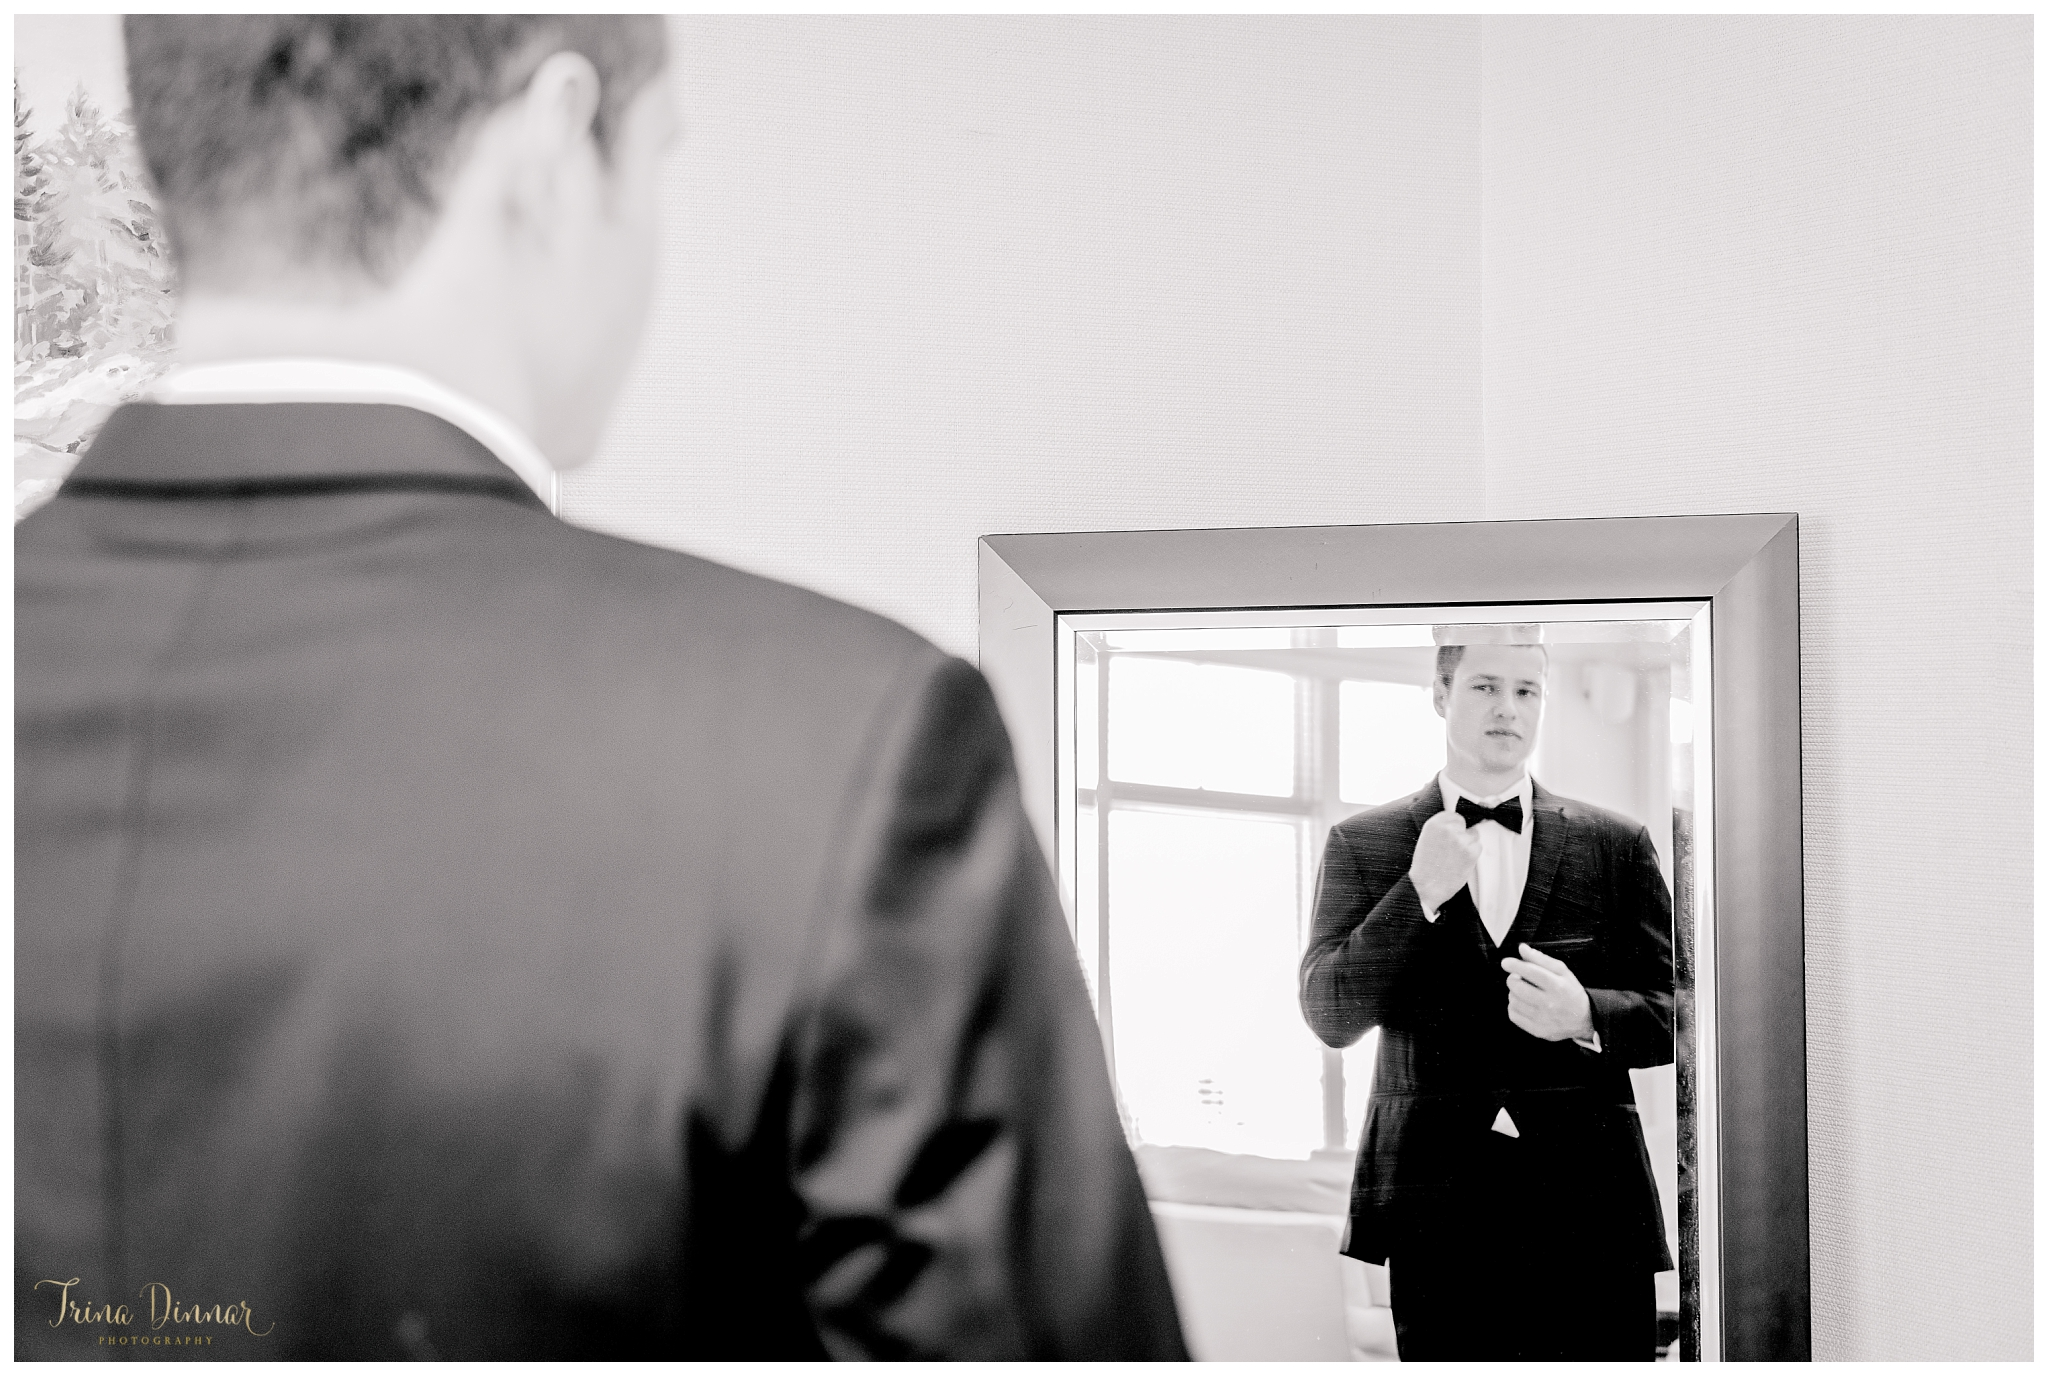 Groom fixing his tie and jacket in the mirror at The Summit.